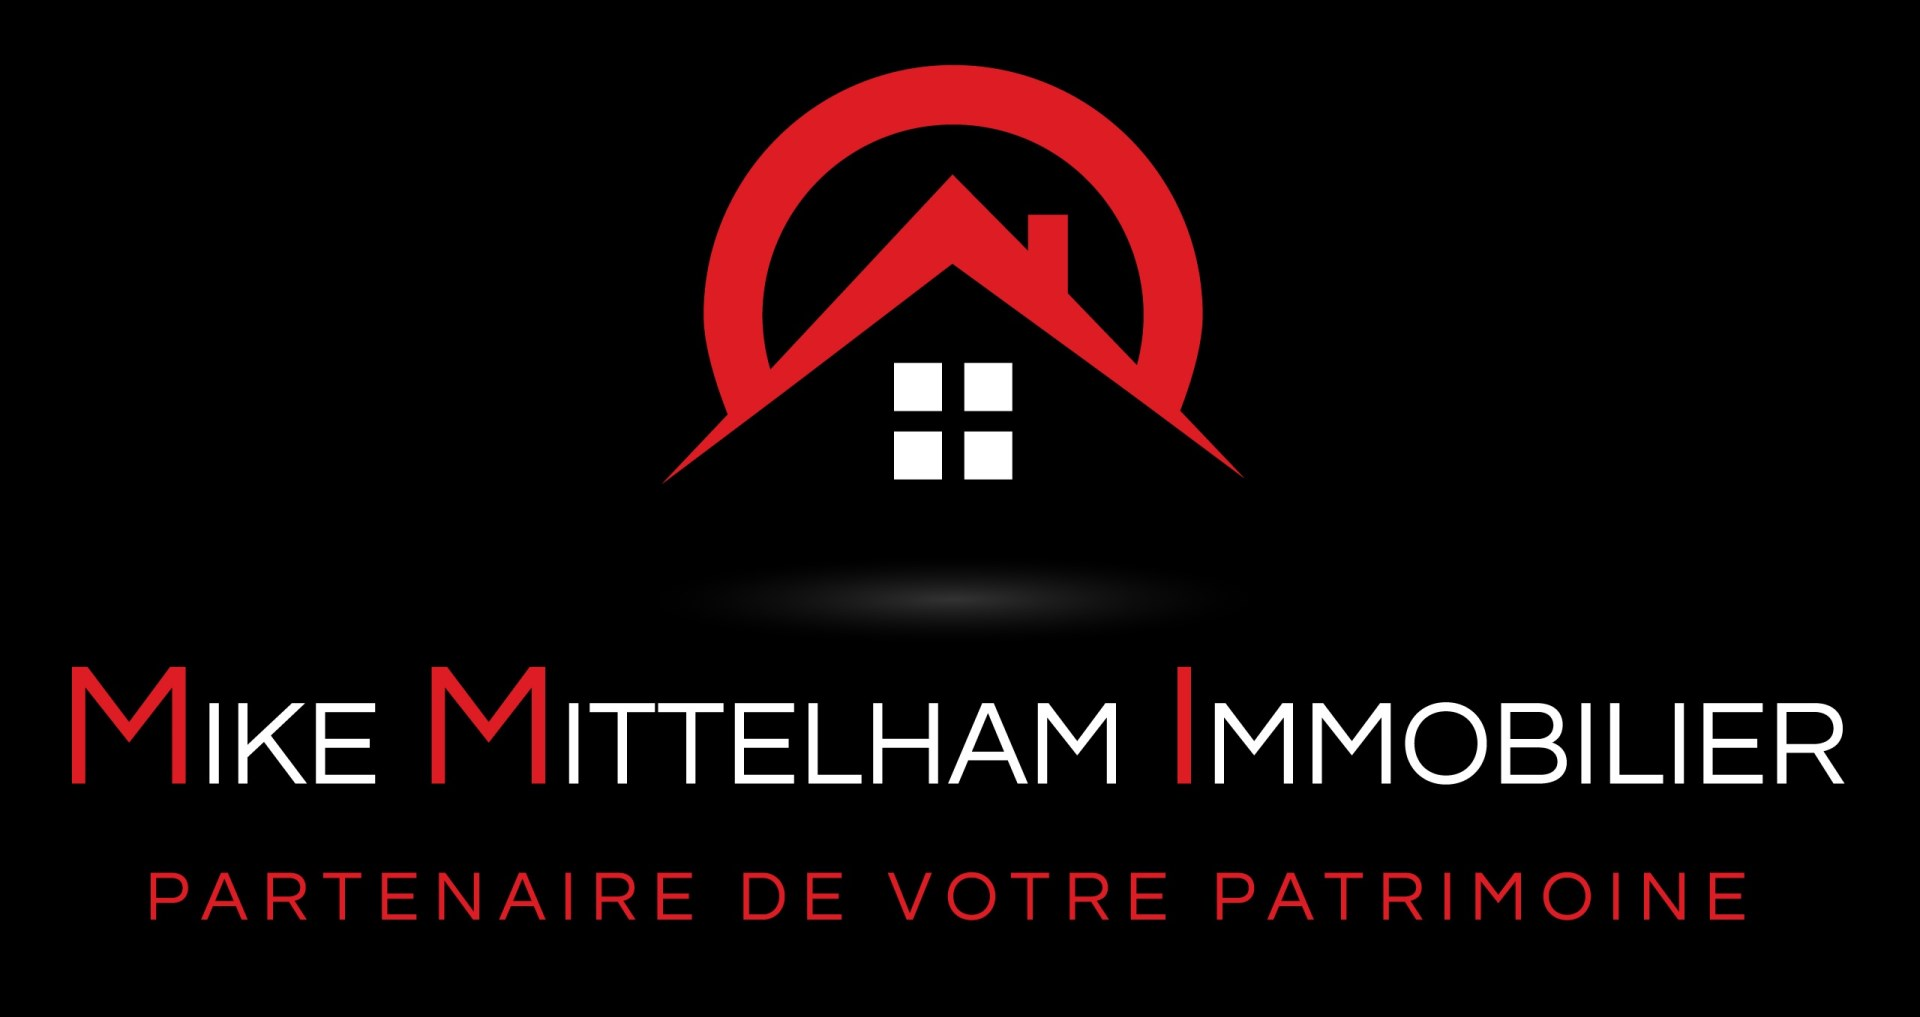 MIKE MITTELHAM IMMOBILIER